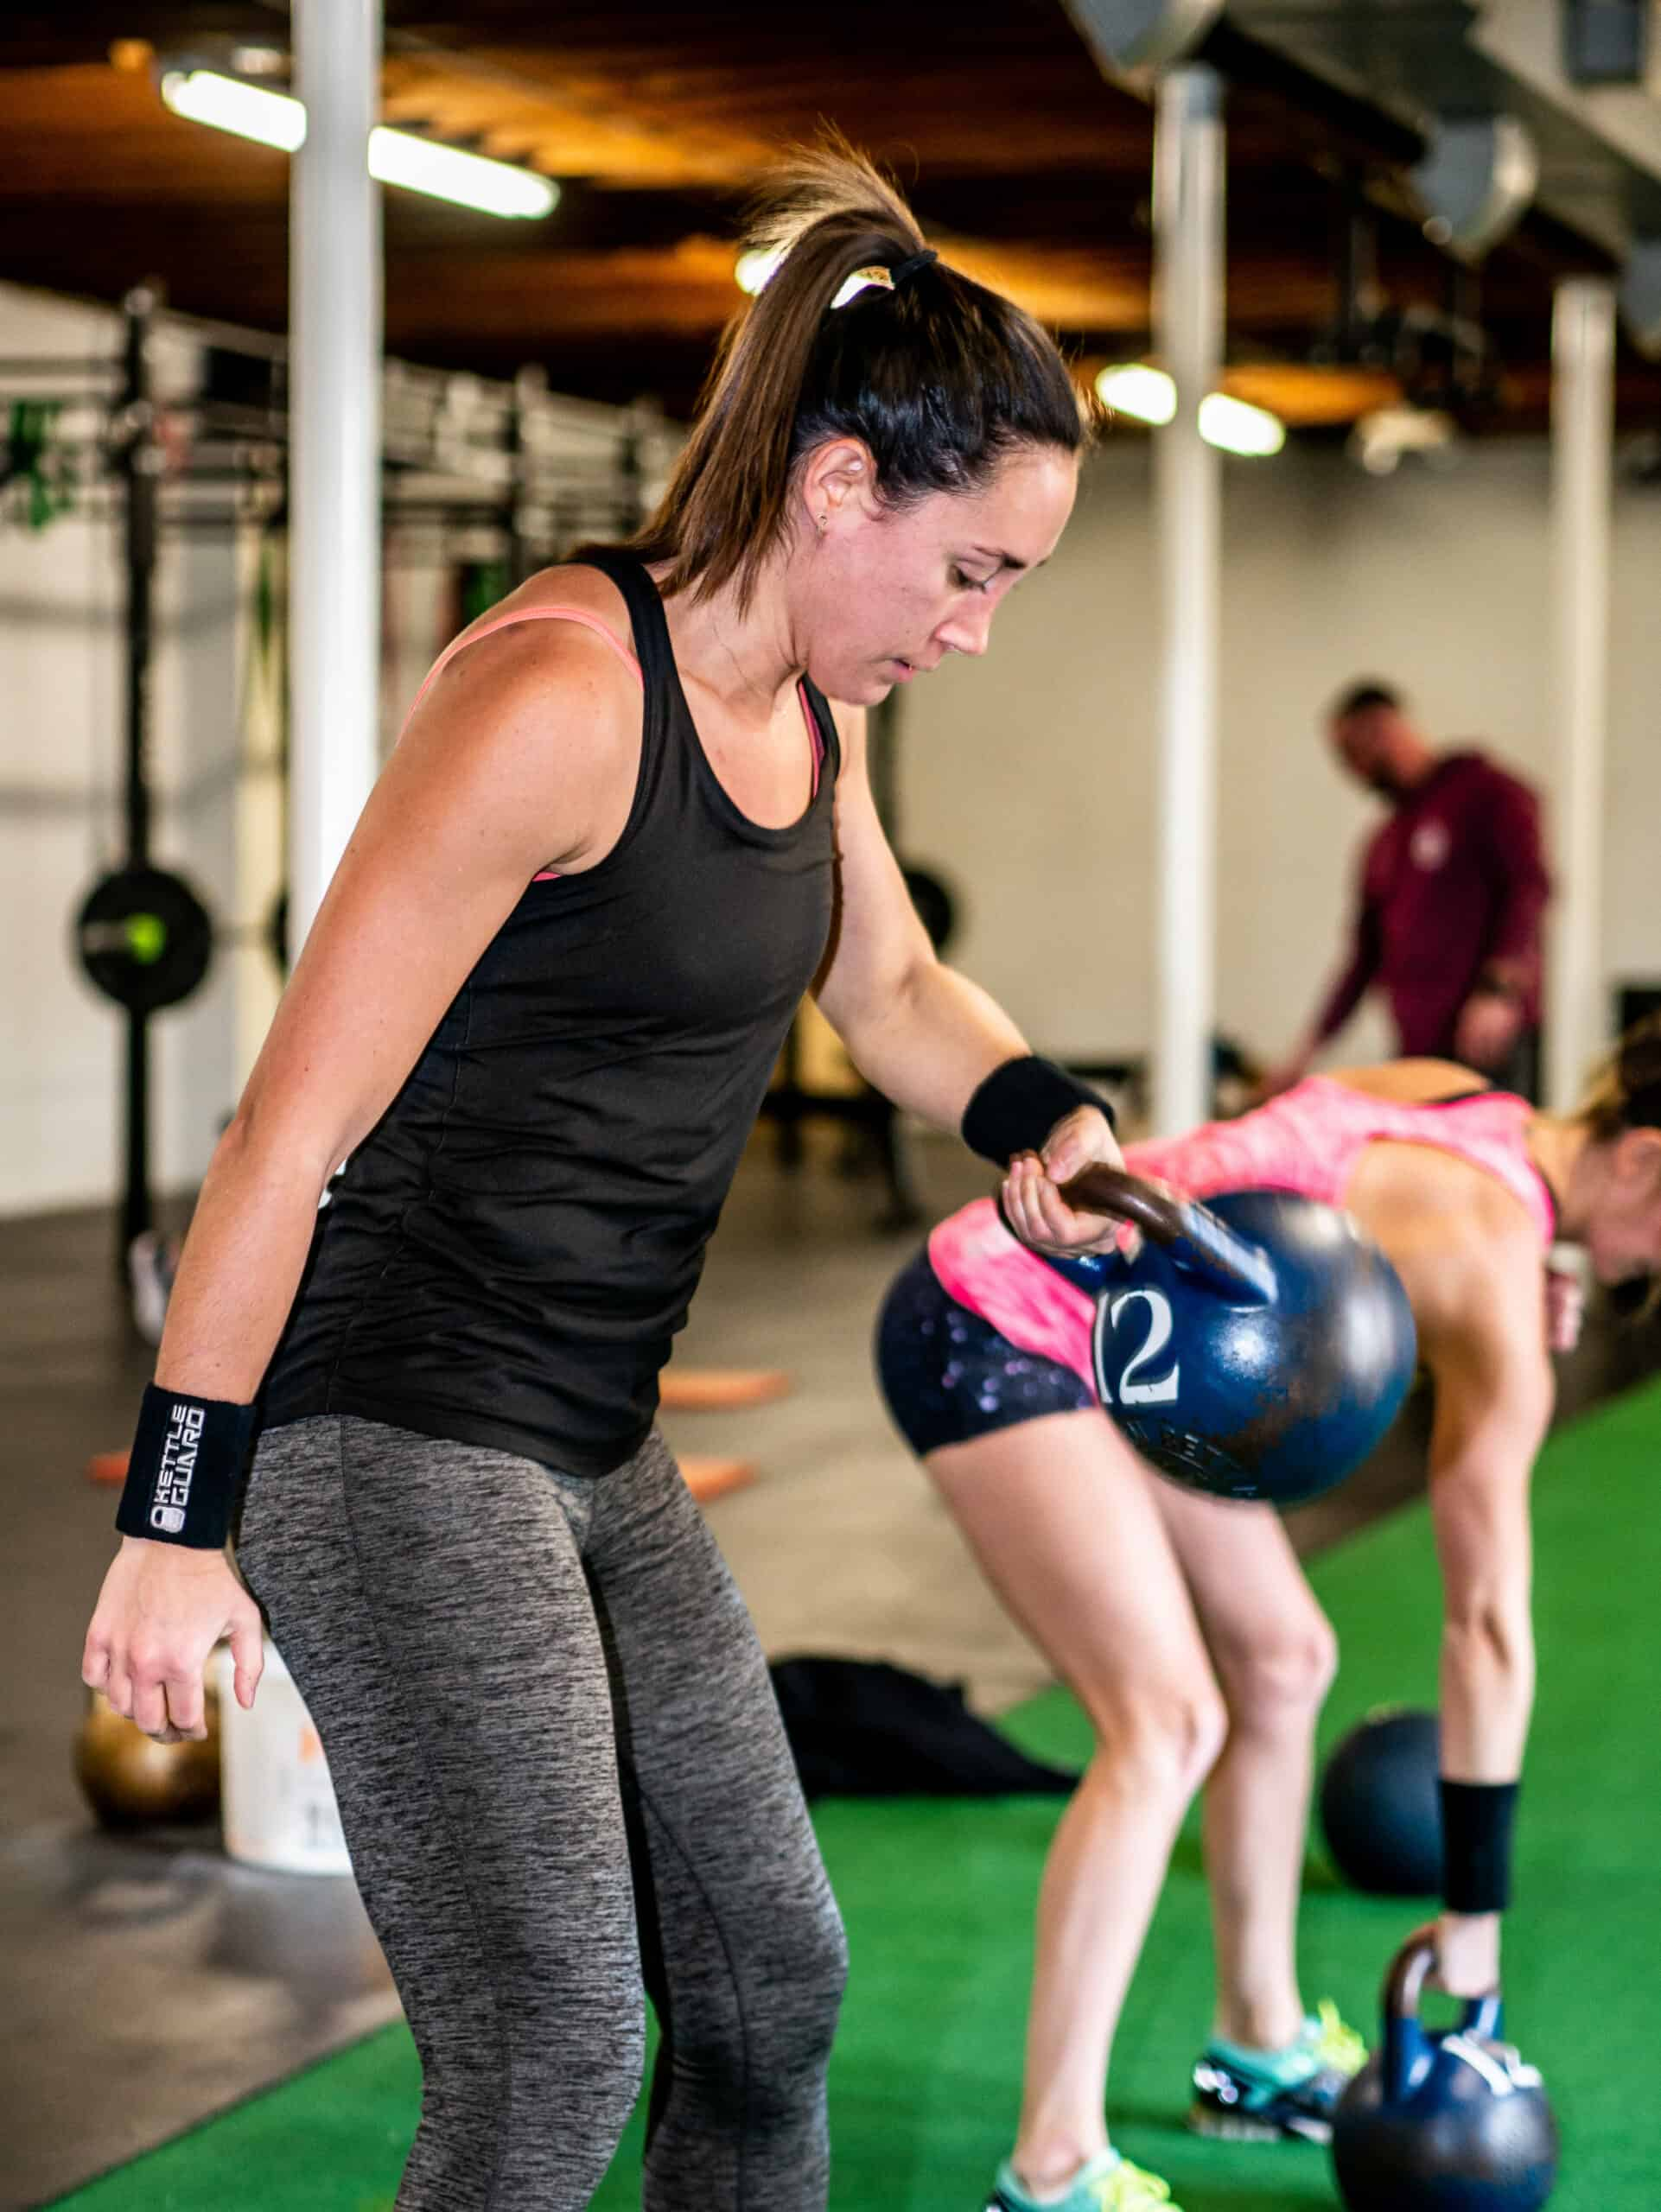 Spark Fitness members training with kettlebells at the fitness center